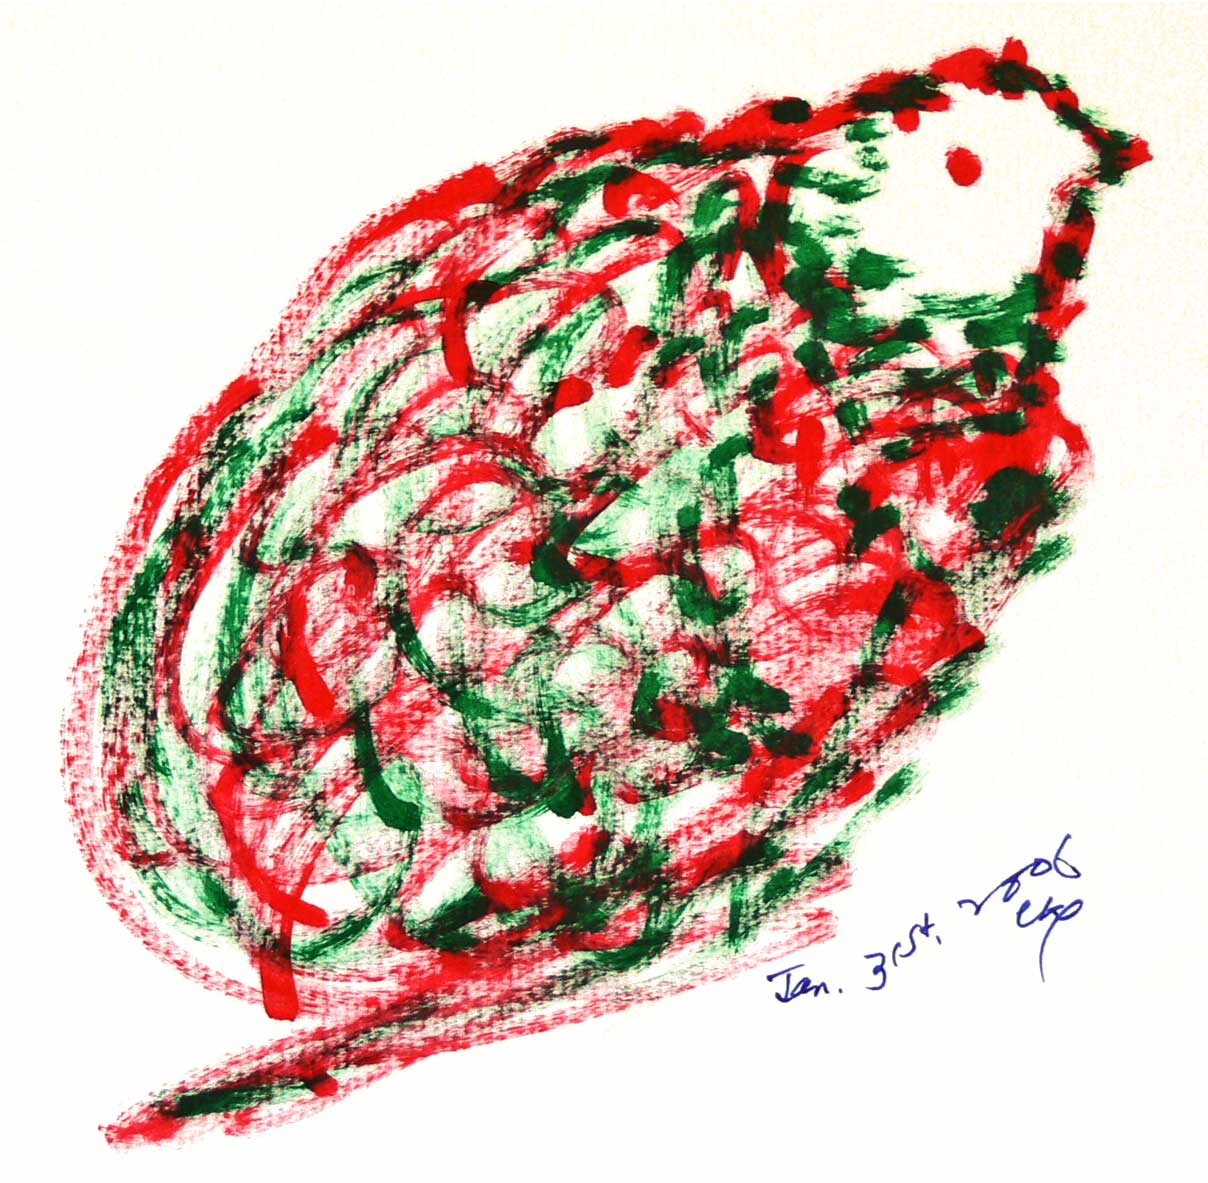 Bird-Drawing-by-Sri-Chinmoy-31-1-2006-11